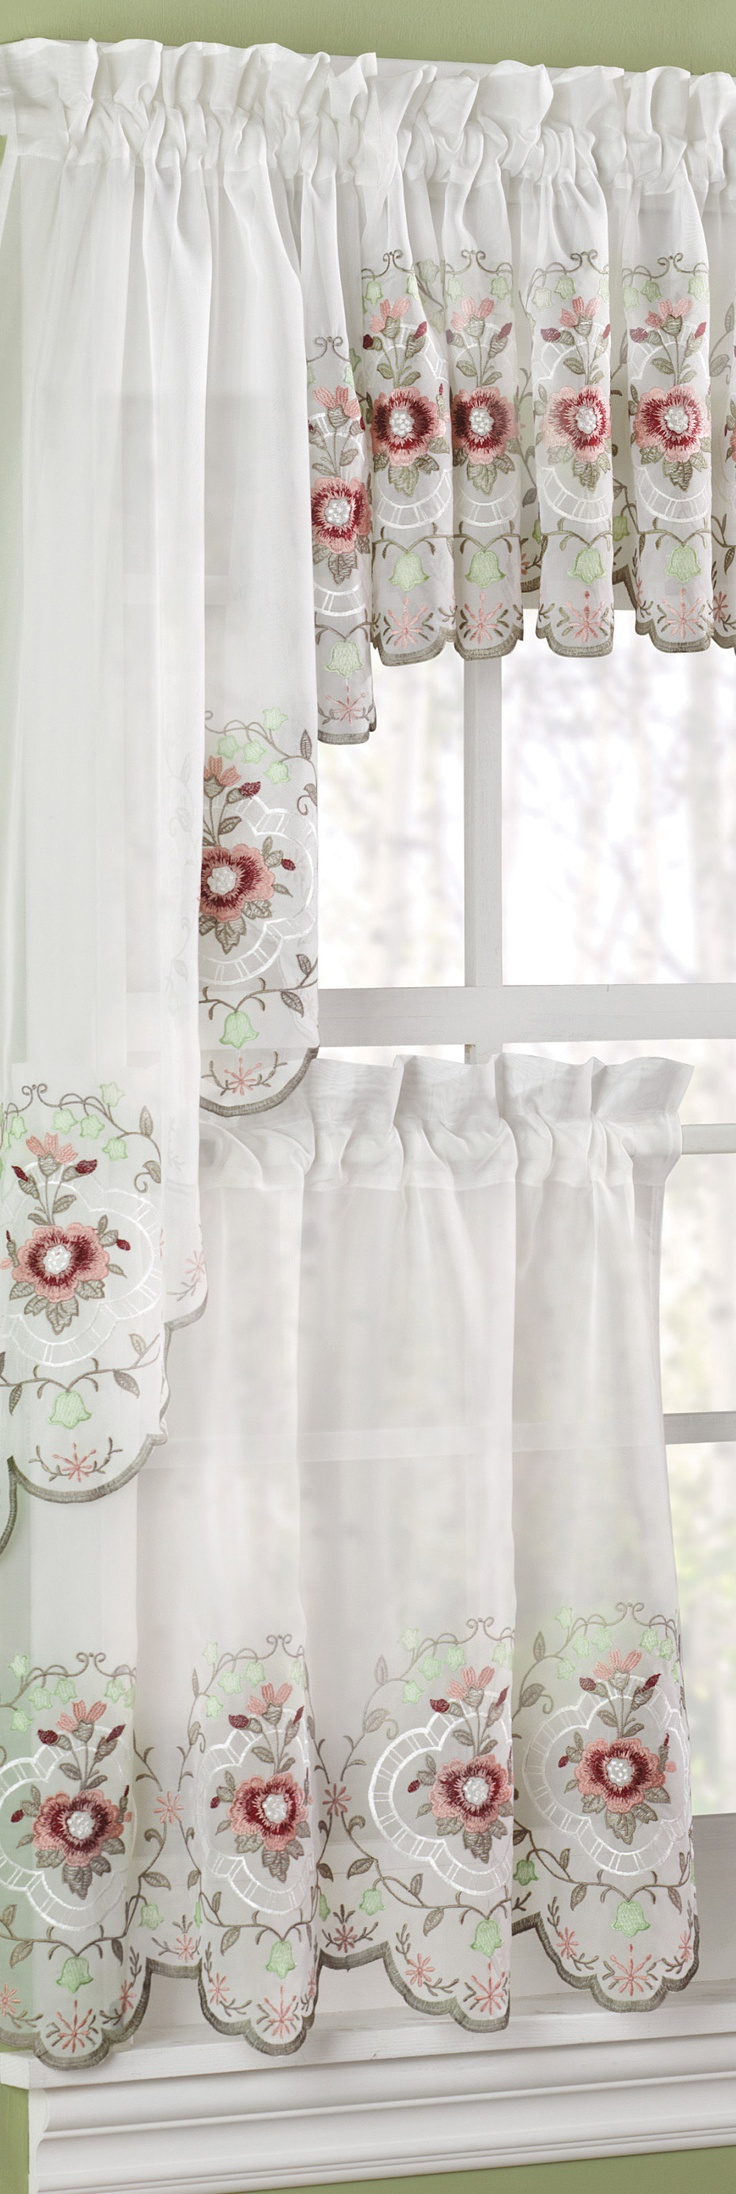 Embellish your kitchen window with the Gisela Rose tier curtain. #AnnasLinens #Curtains #Kitchen